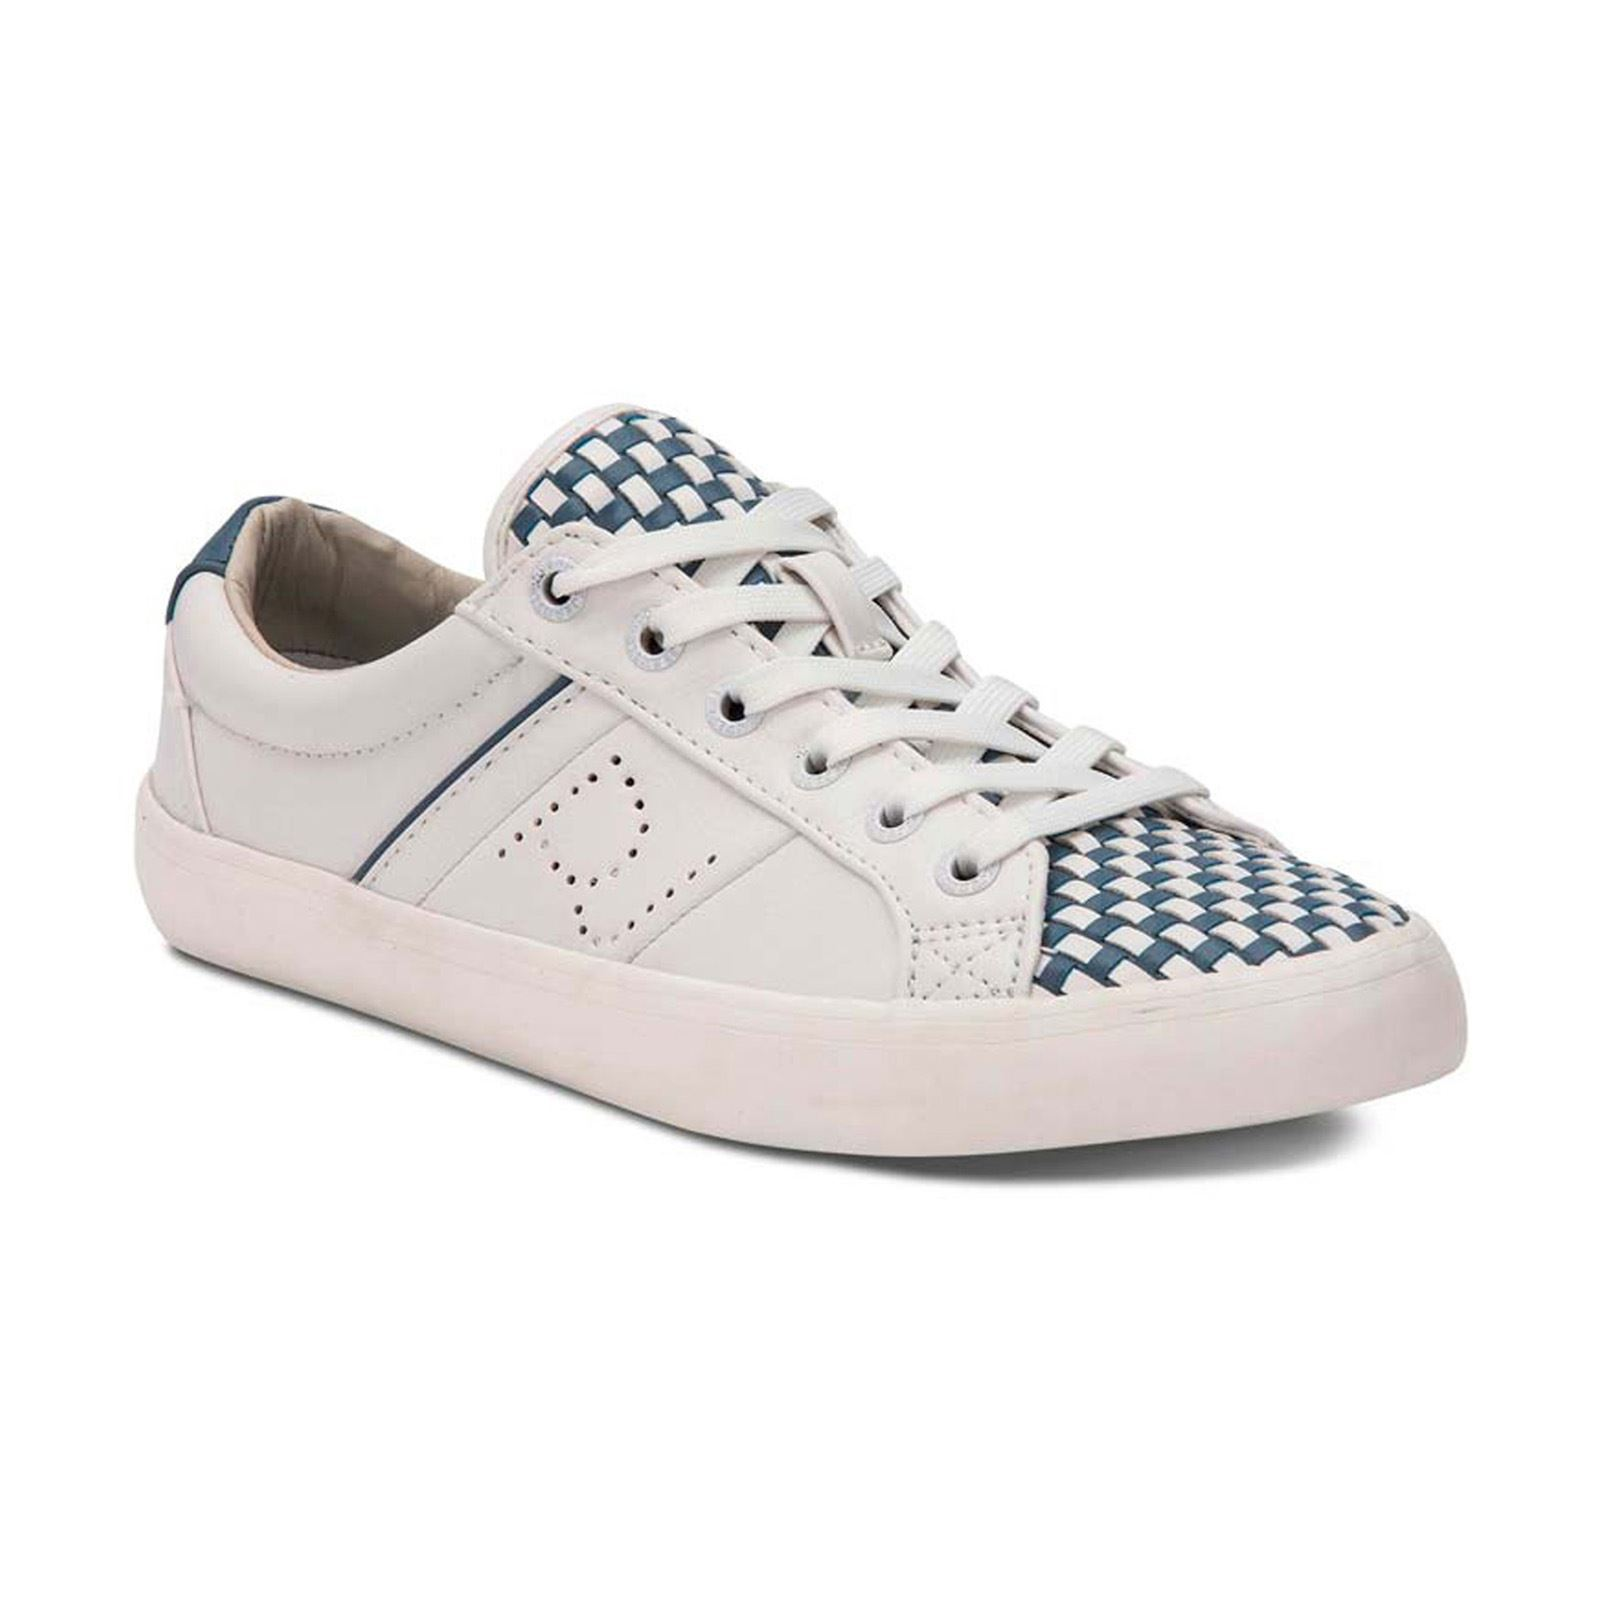 Pepejeans Baskets Clinton